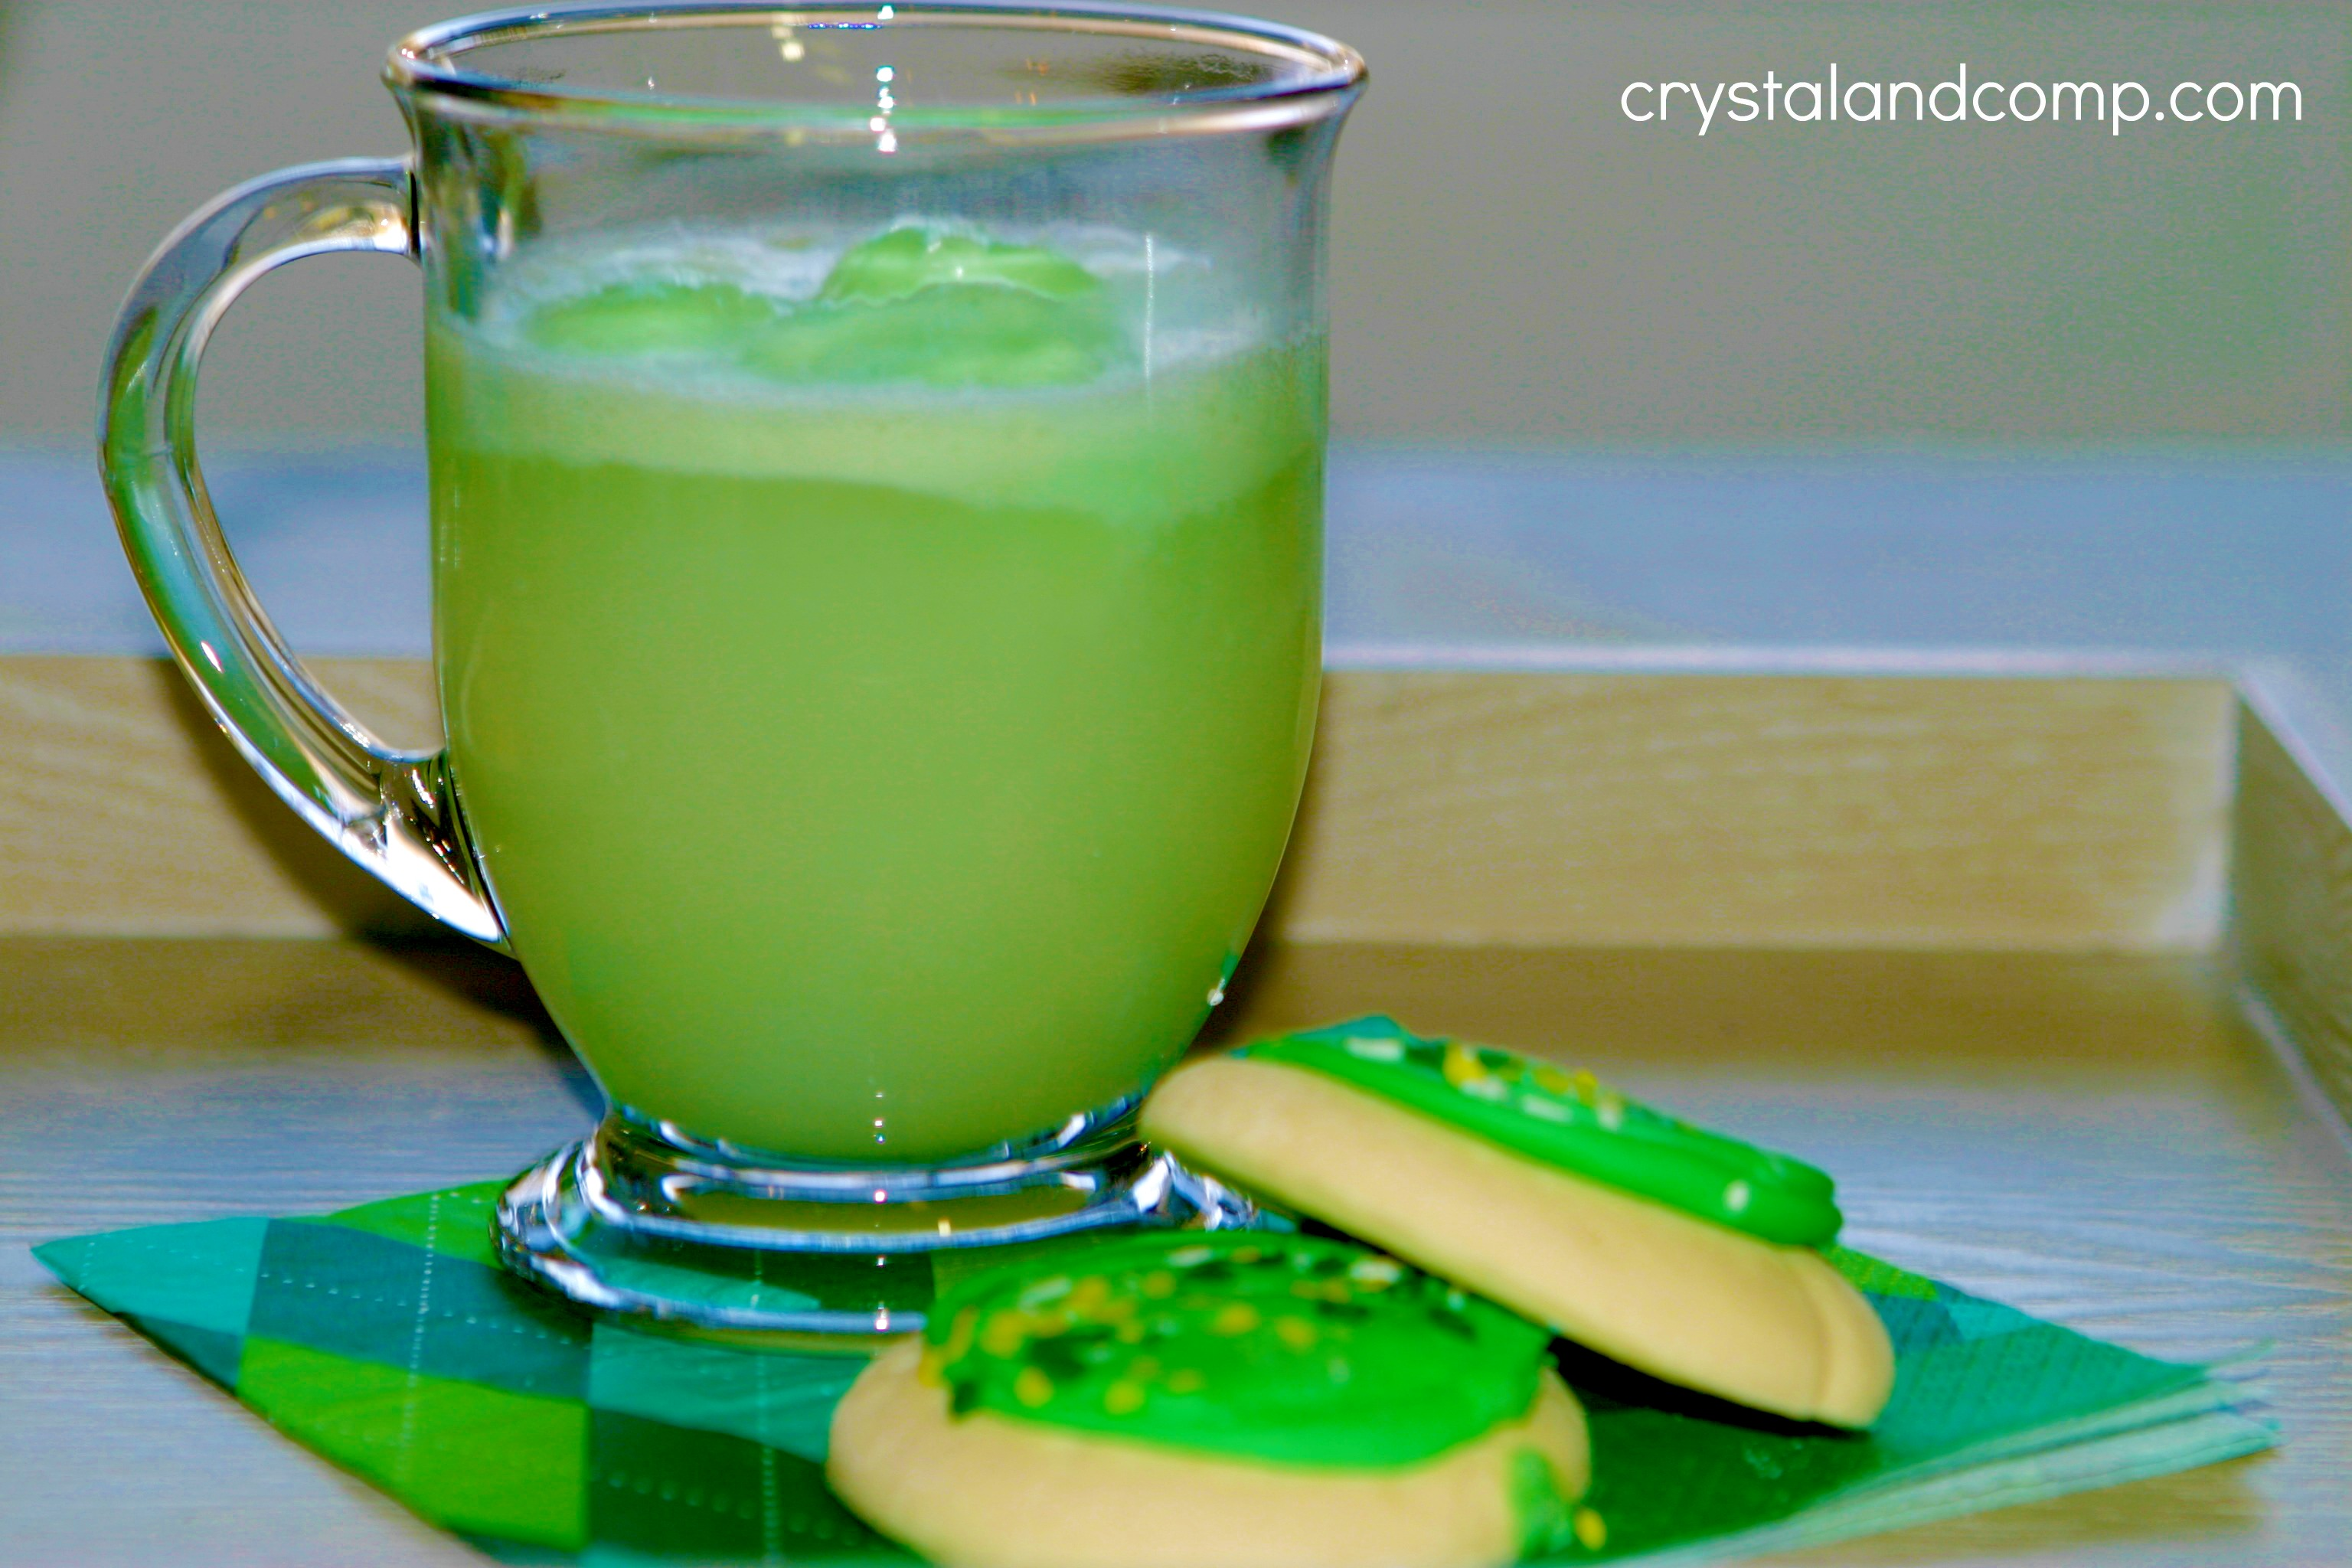 St pattys day crafts - St Patrick Day Crafts Green Punch